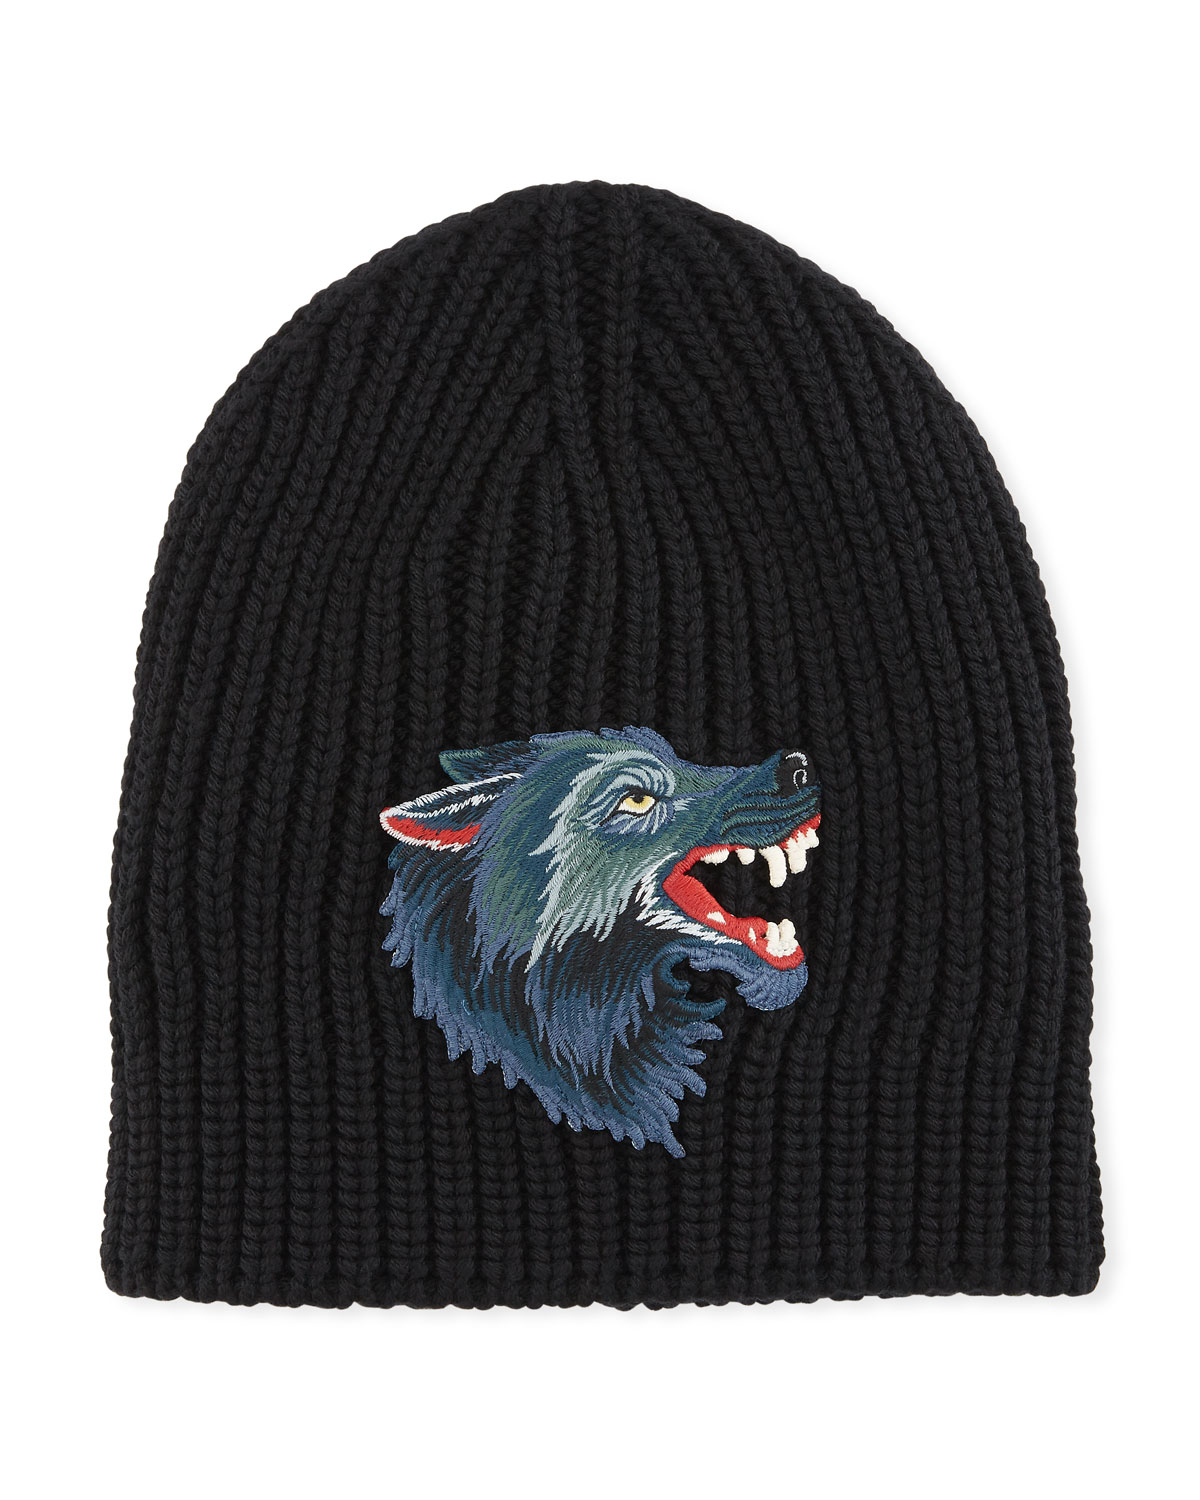 Gucci Wool Hat with Wolf  8ebffa93027